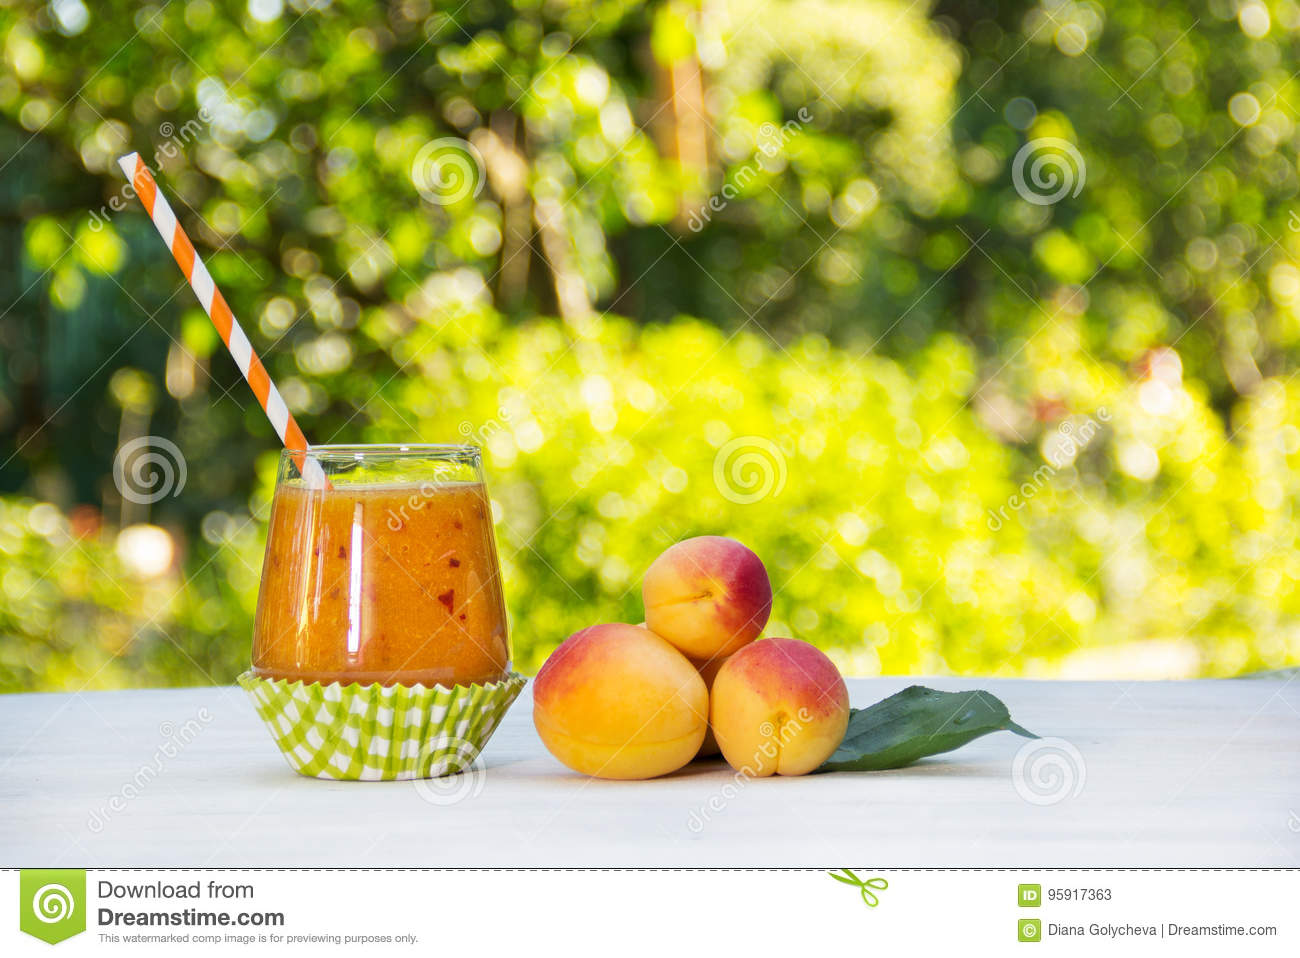 Fresh homemade apricot smoothies in the summer garden. Summer detox drinks. Refreshing drink from apricots and peaches.